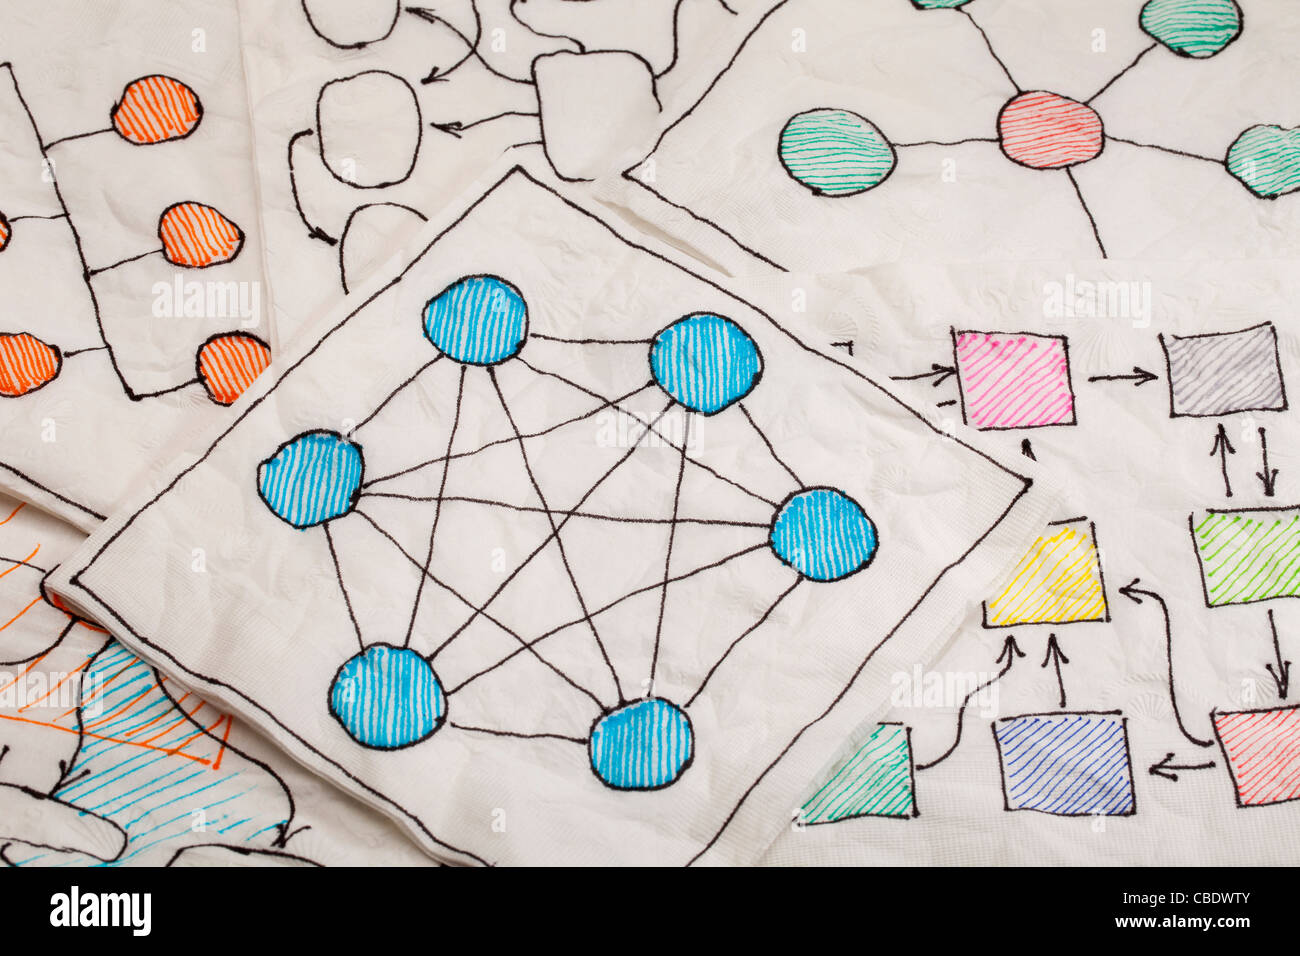 different network schematics sketched on white napkins - Stock Image